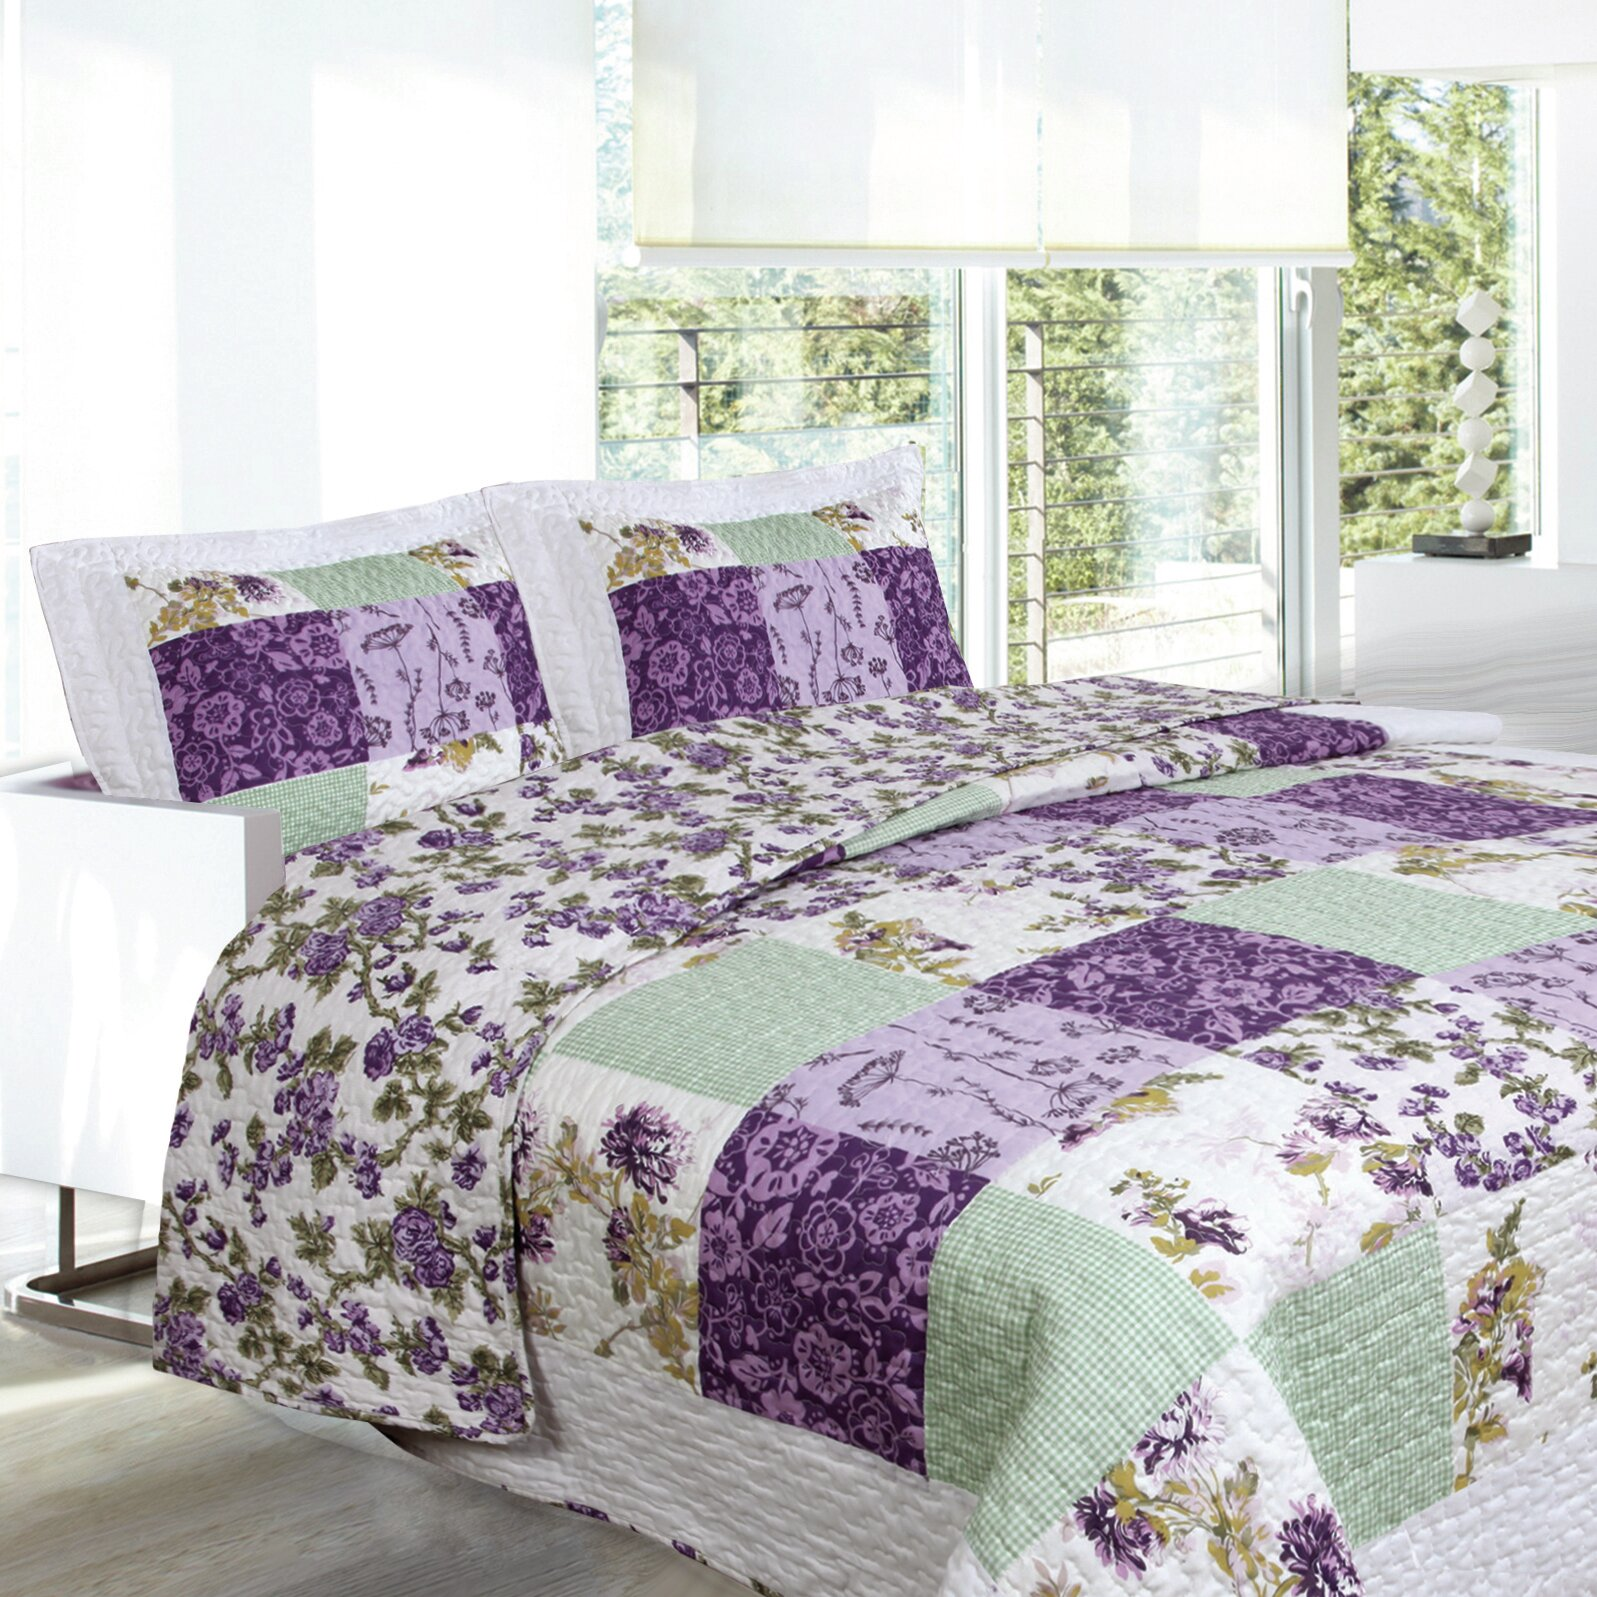 A keletnemet lanyok eneke   made in hungaria 457 - Bed Sheet Set With Quilt Lauren Taylor Quilt Set